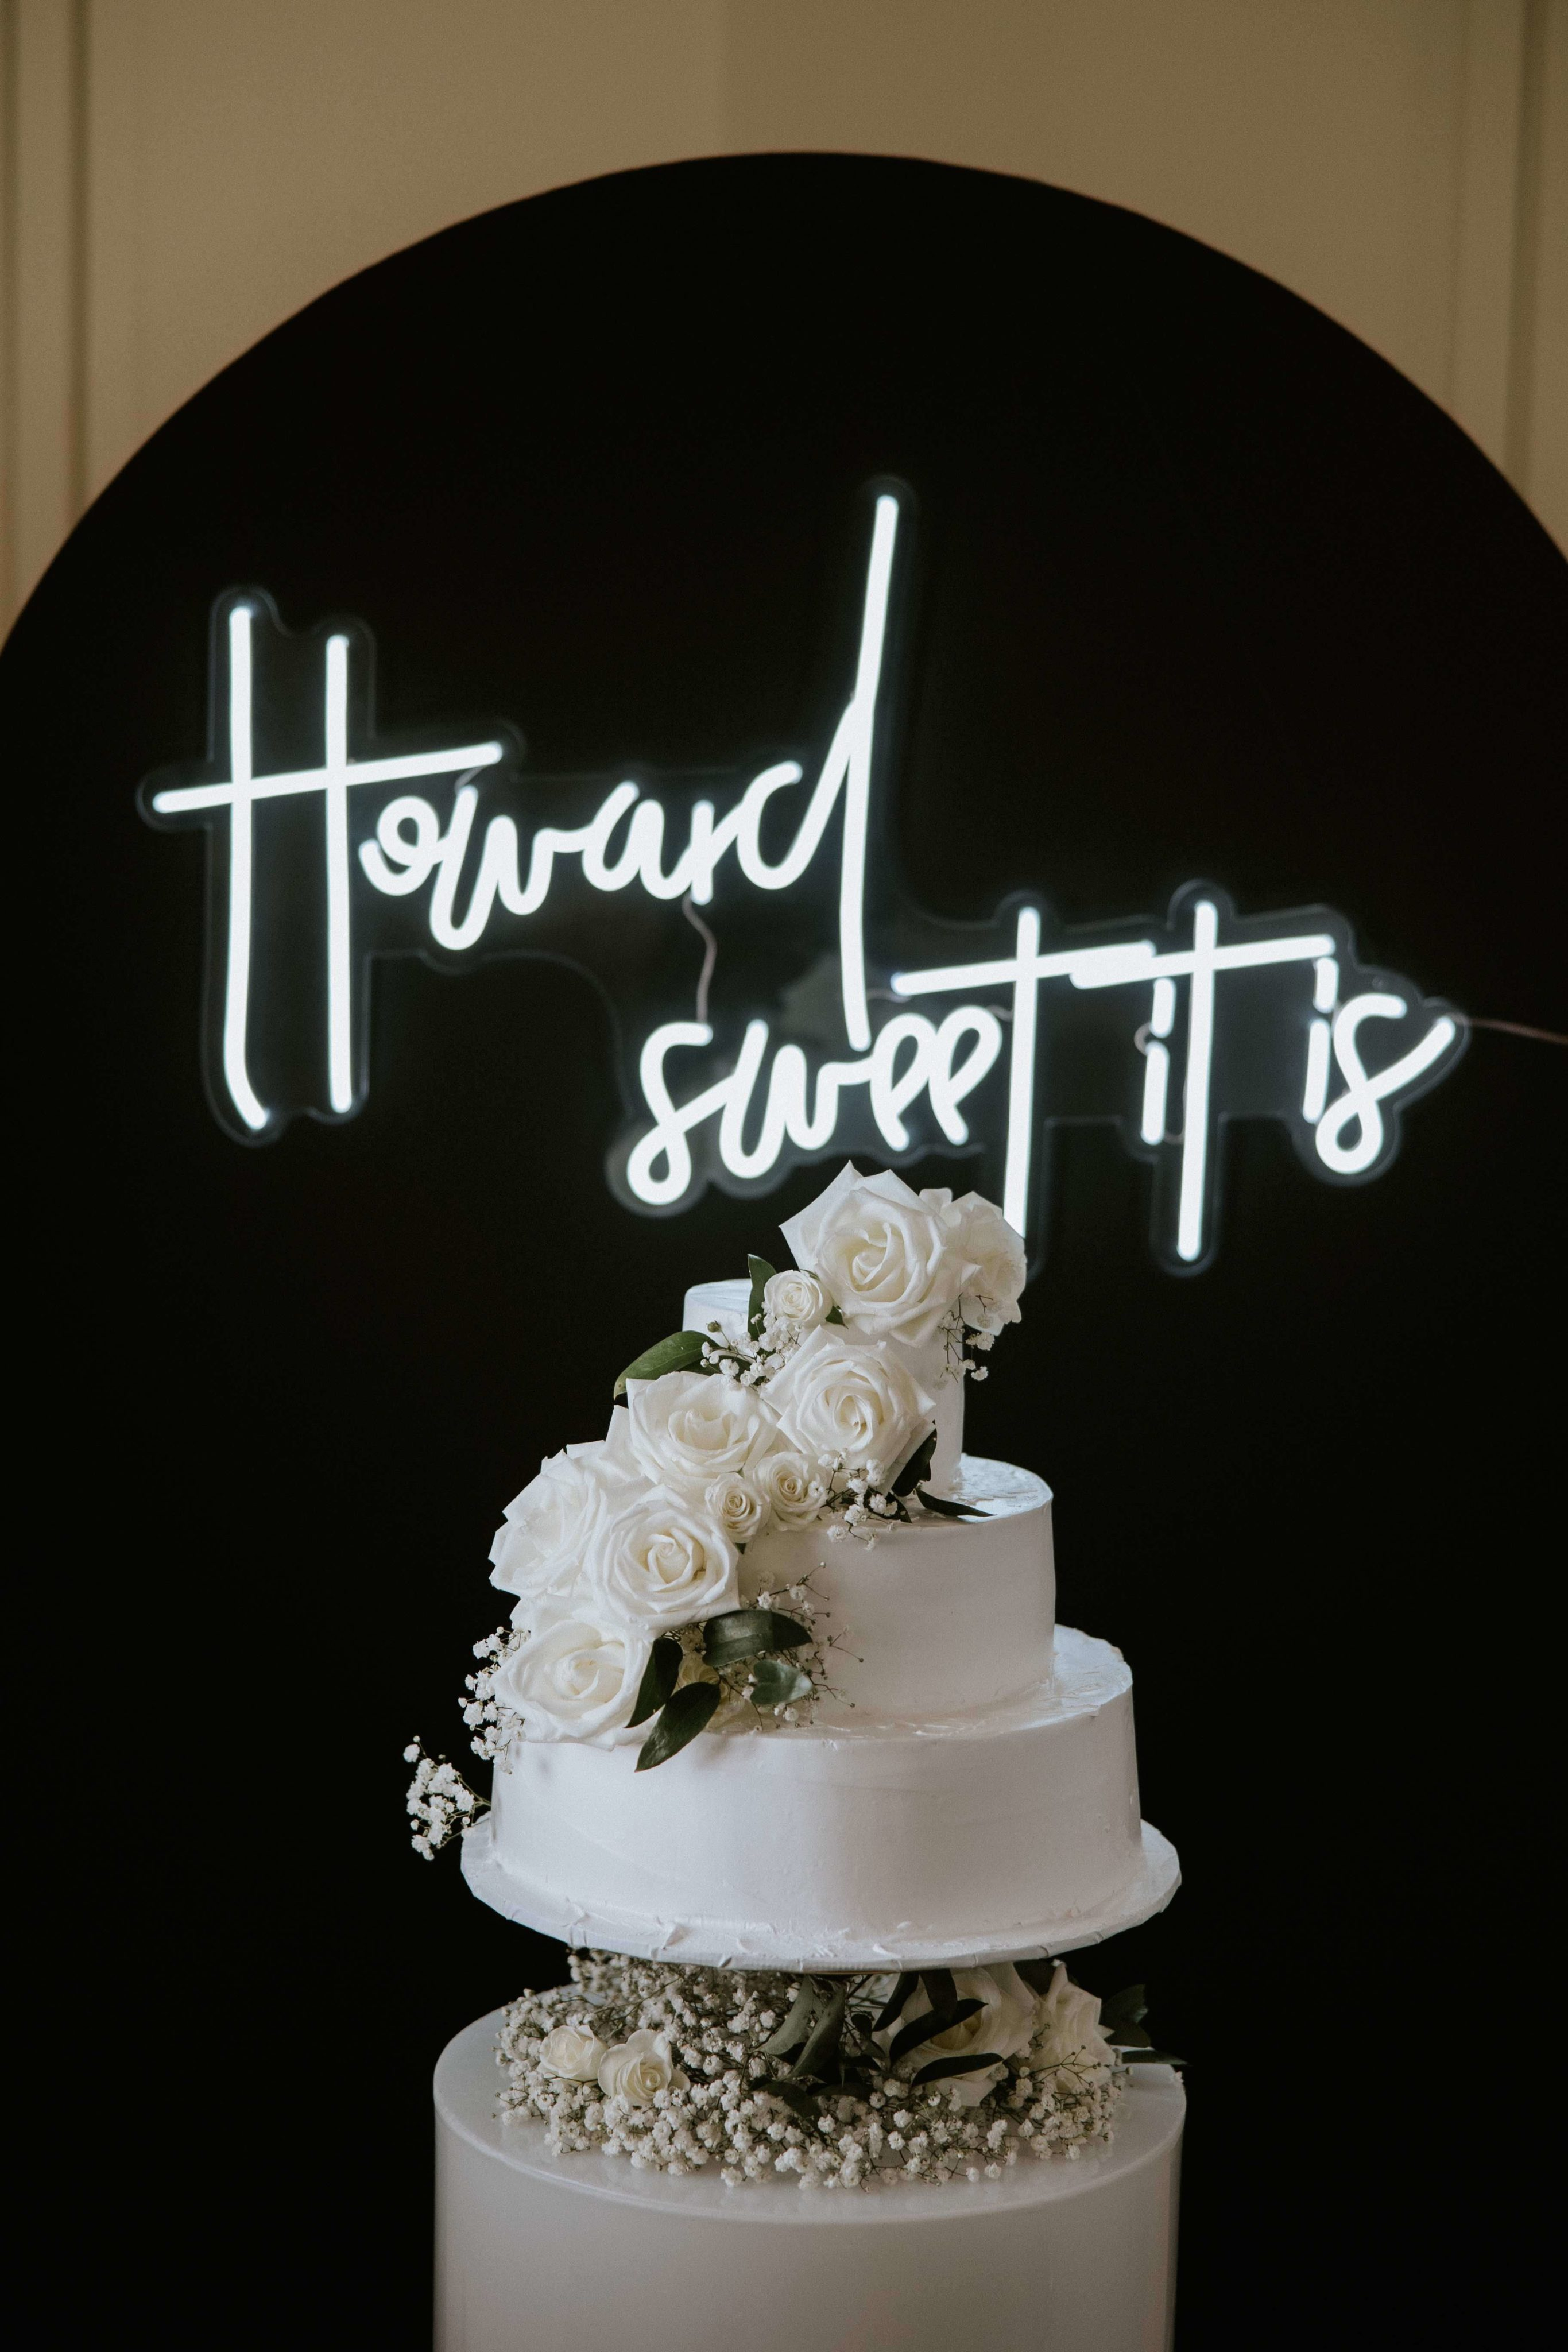 Cake with 'how sweet it is' neon sign in background